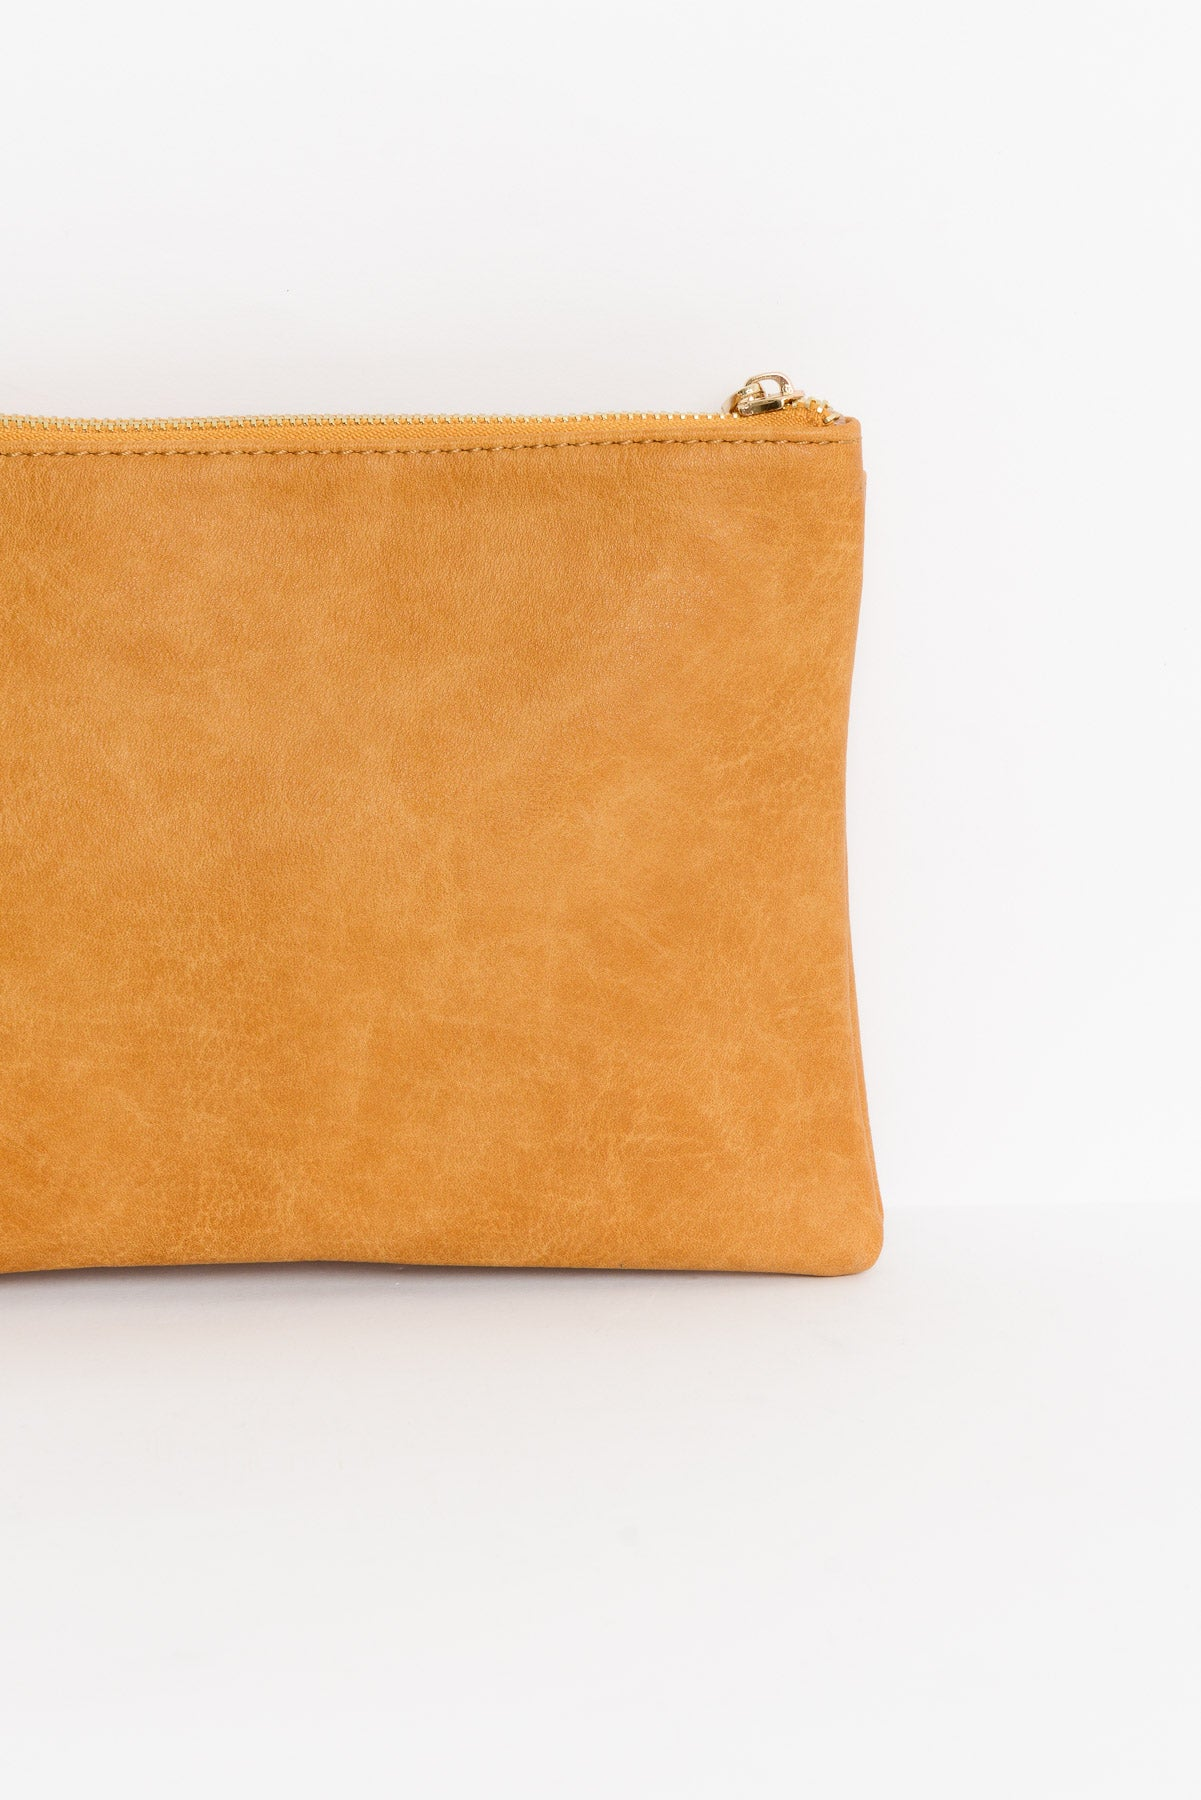 Mustard V Panel Vegan Leather Clutch